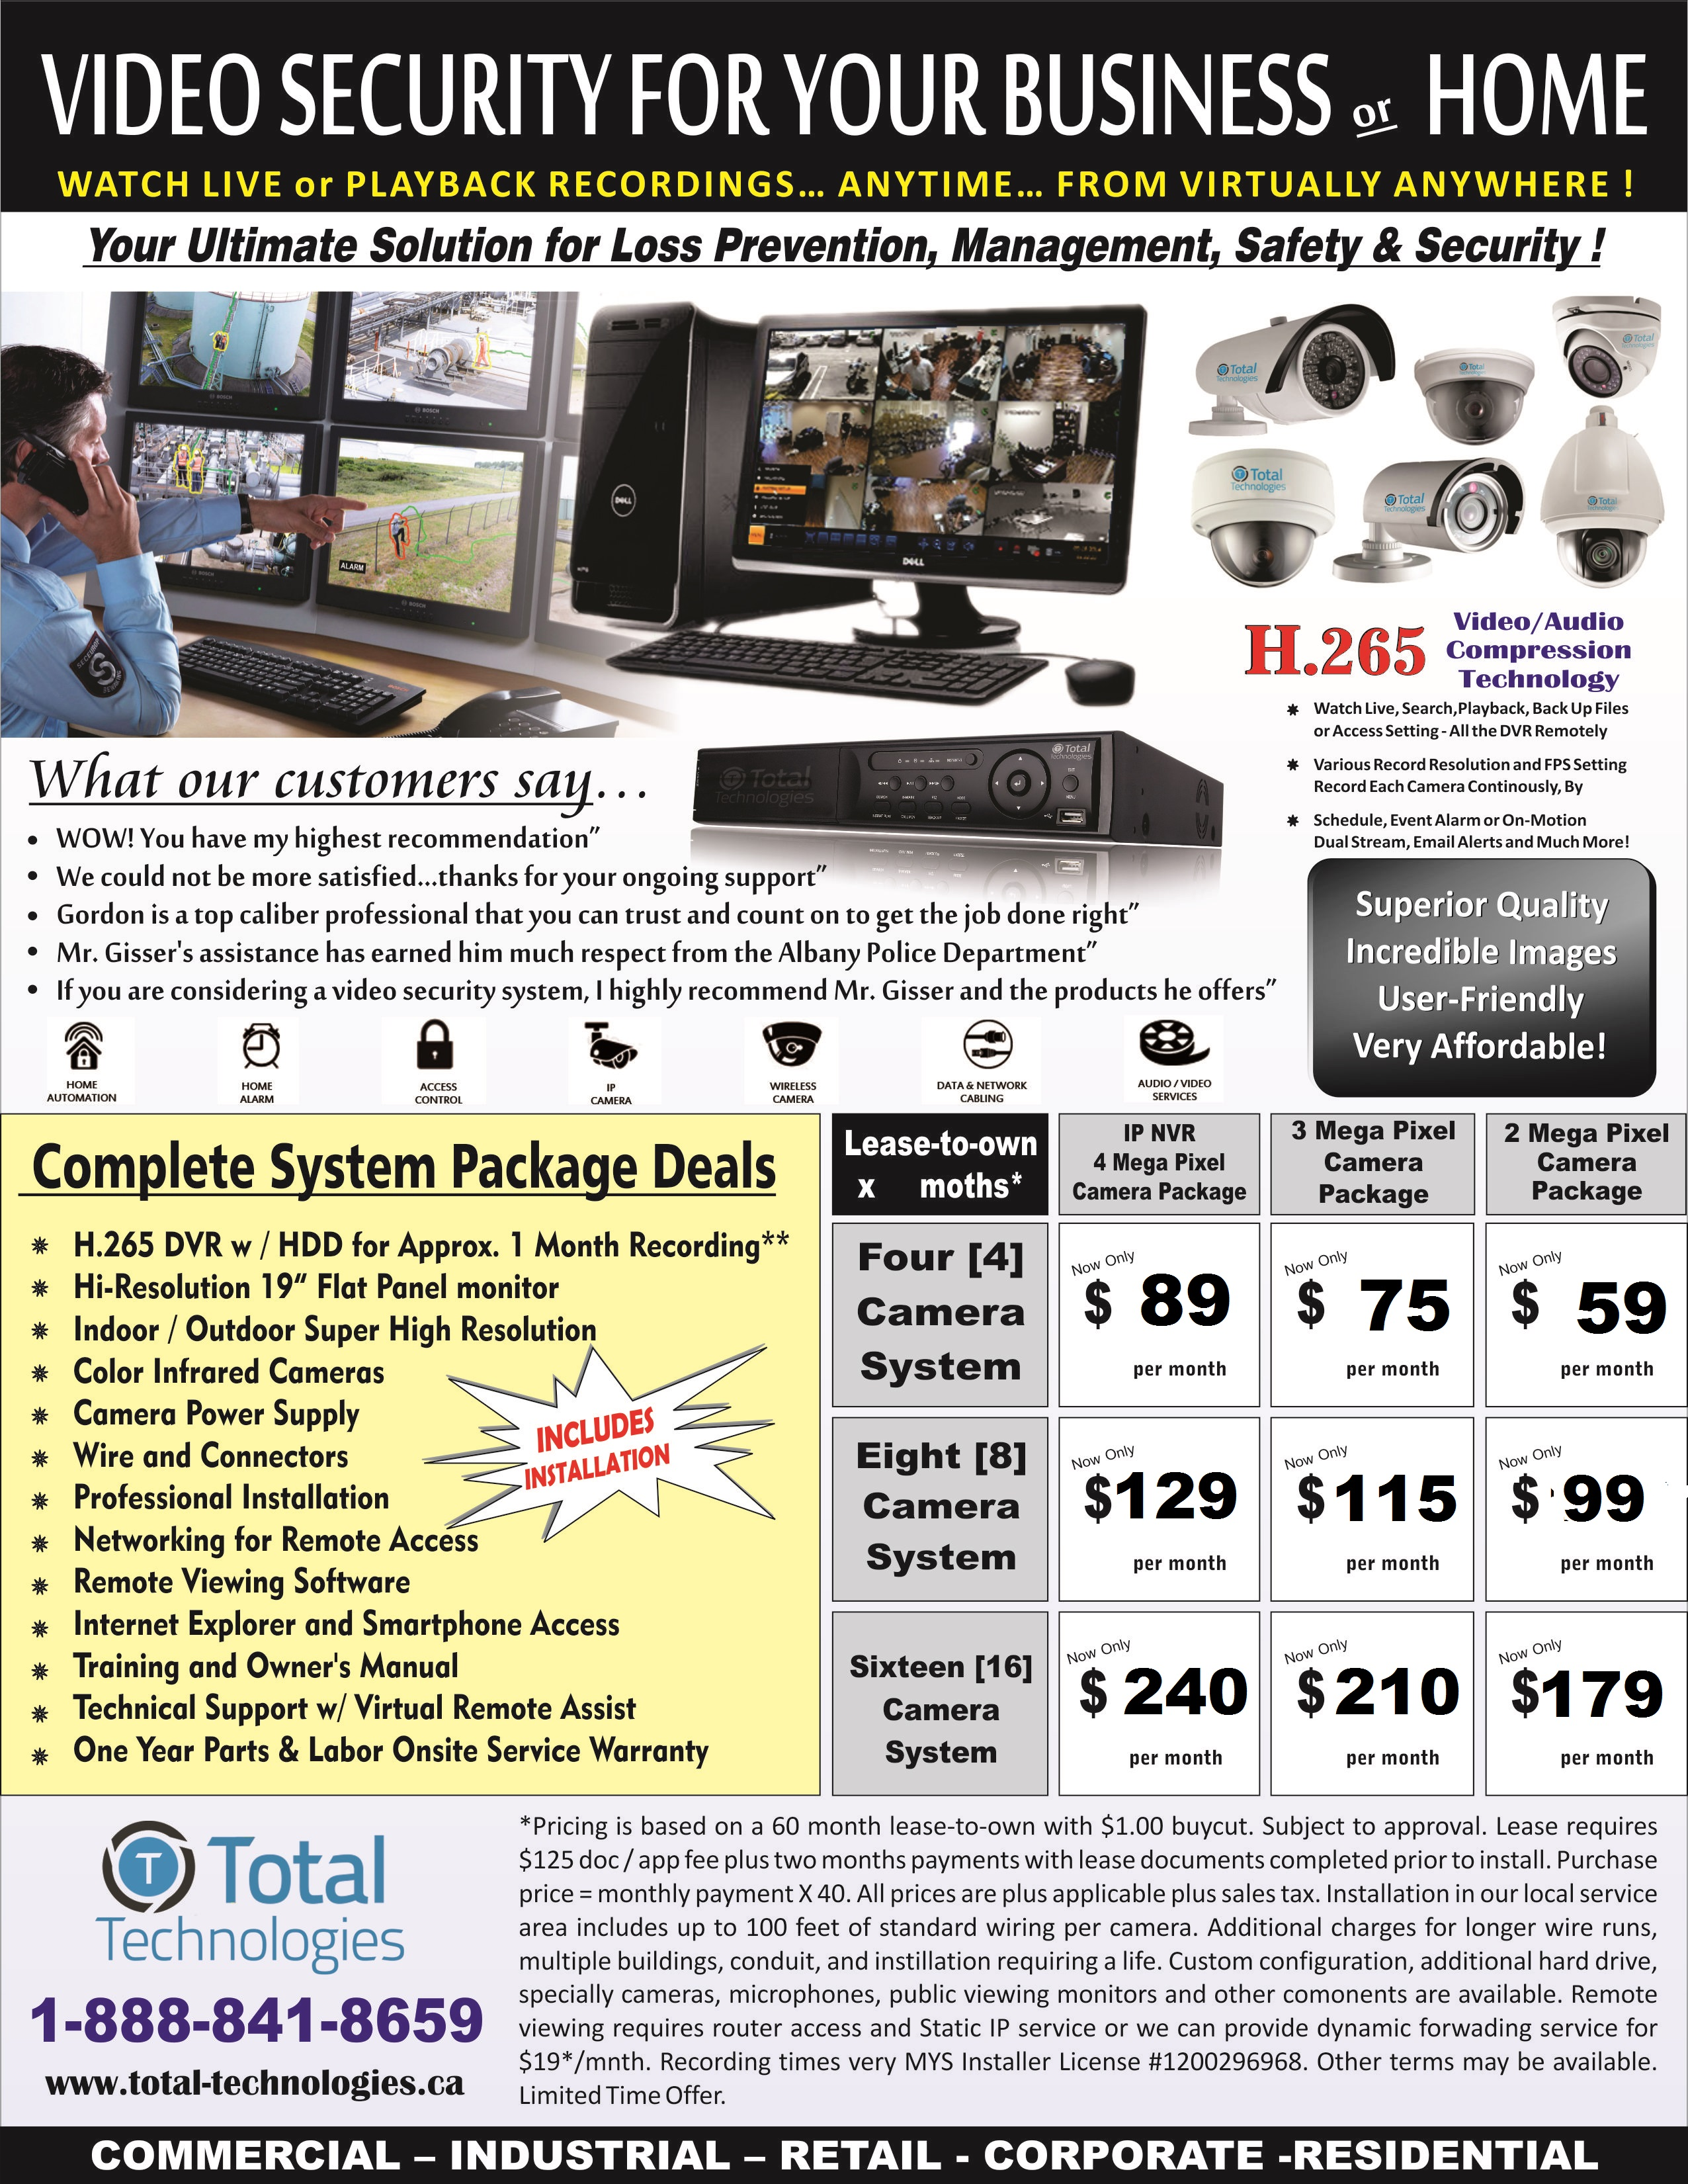 001-CMYK_price-_standard_web Total Technologies Monthly Packages- Camera system